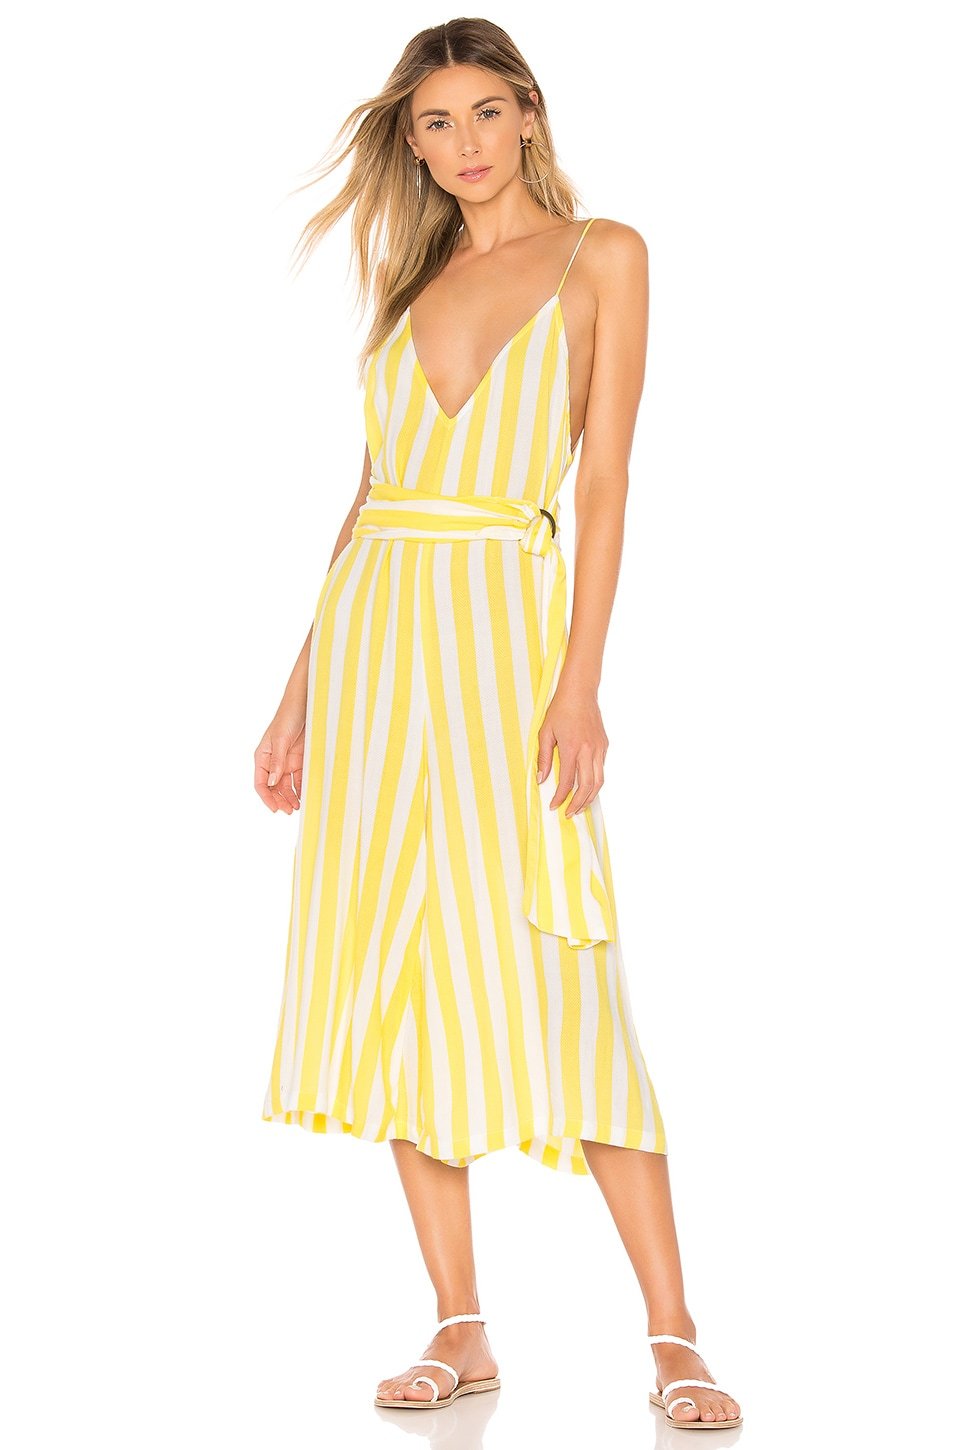 lovewave Milly Jumpsuit in Chartreuse Stripe